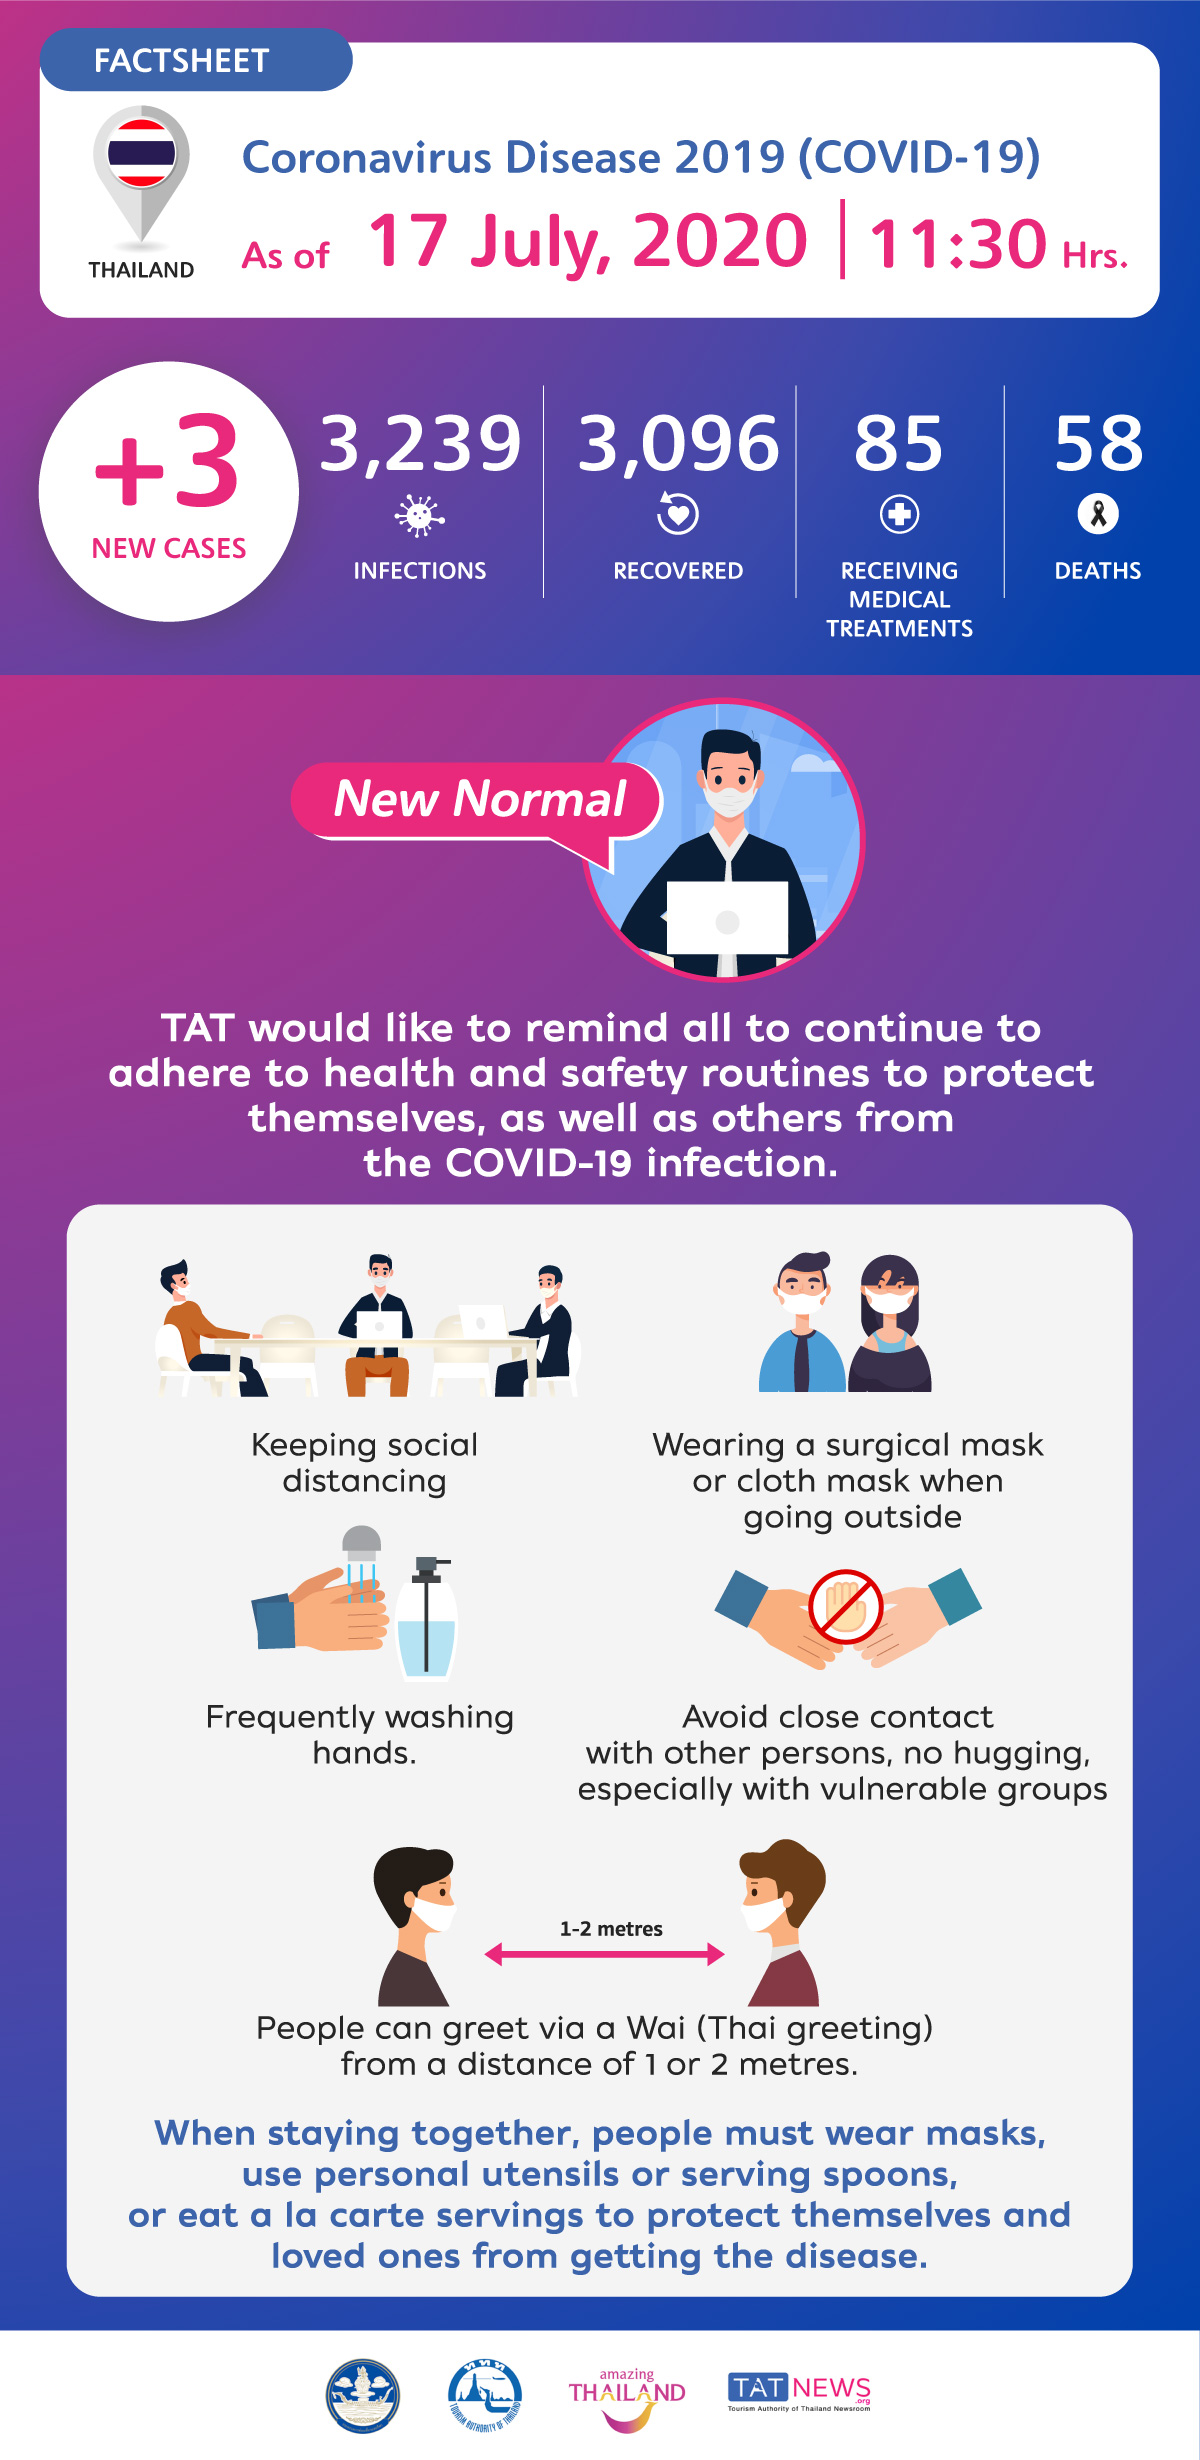 Coronavirus Disease 2019 (COVID-19) situation in Thailand as of 17 July 2020, 11.30 Hrs.-1